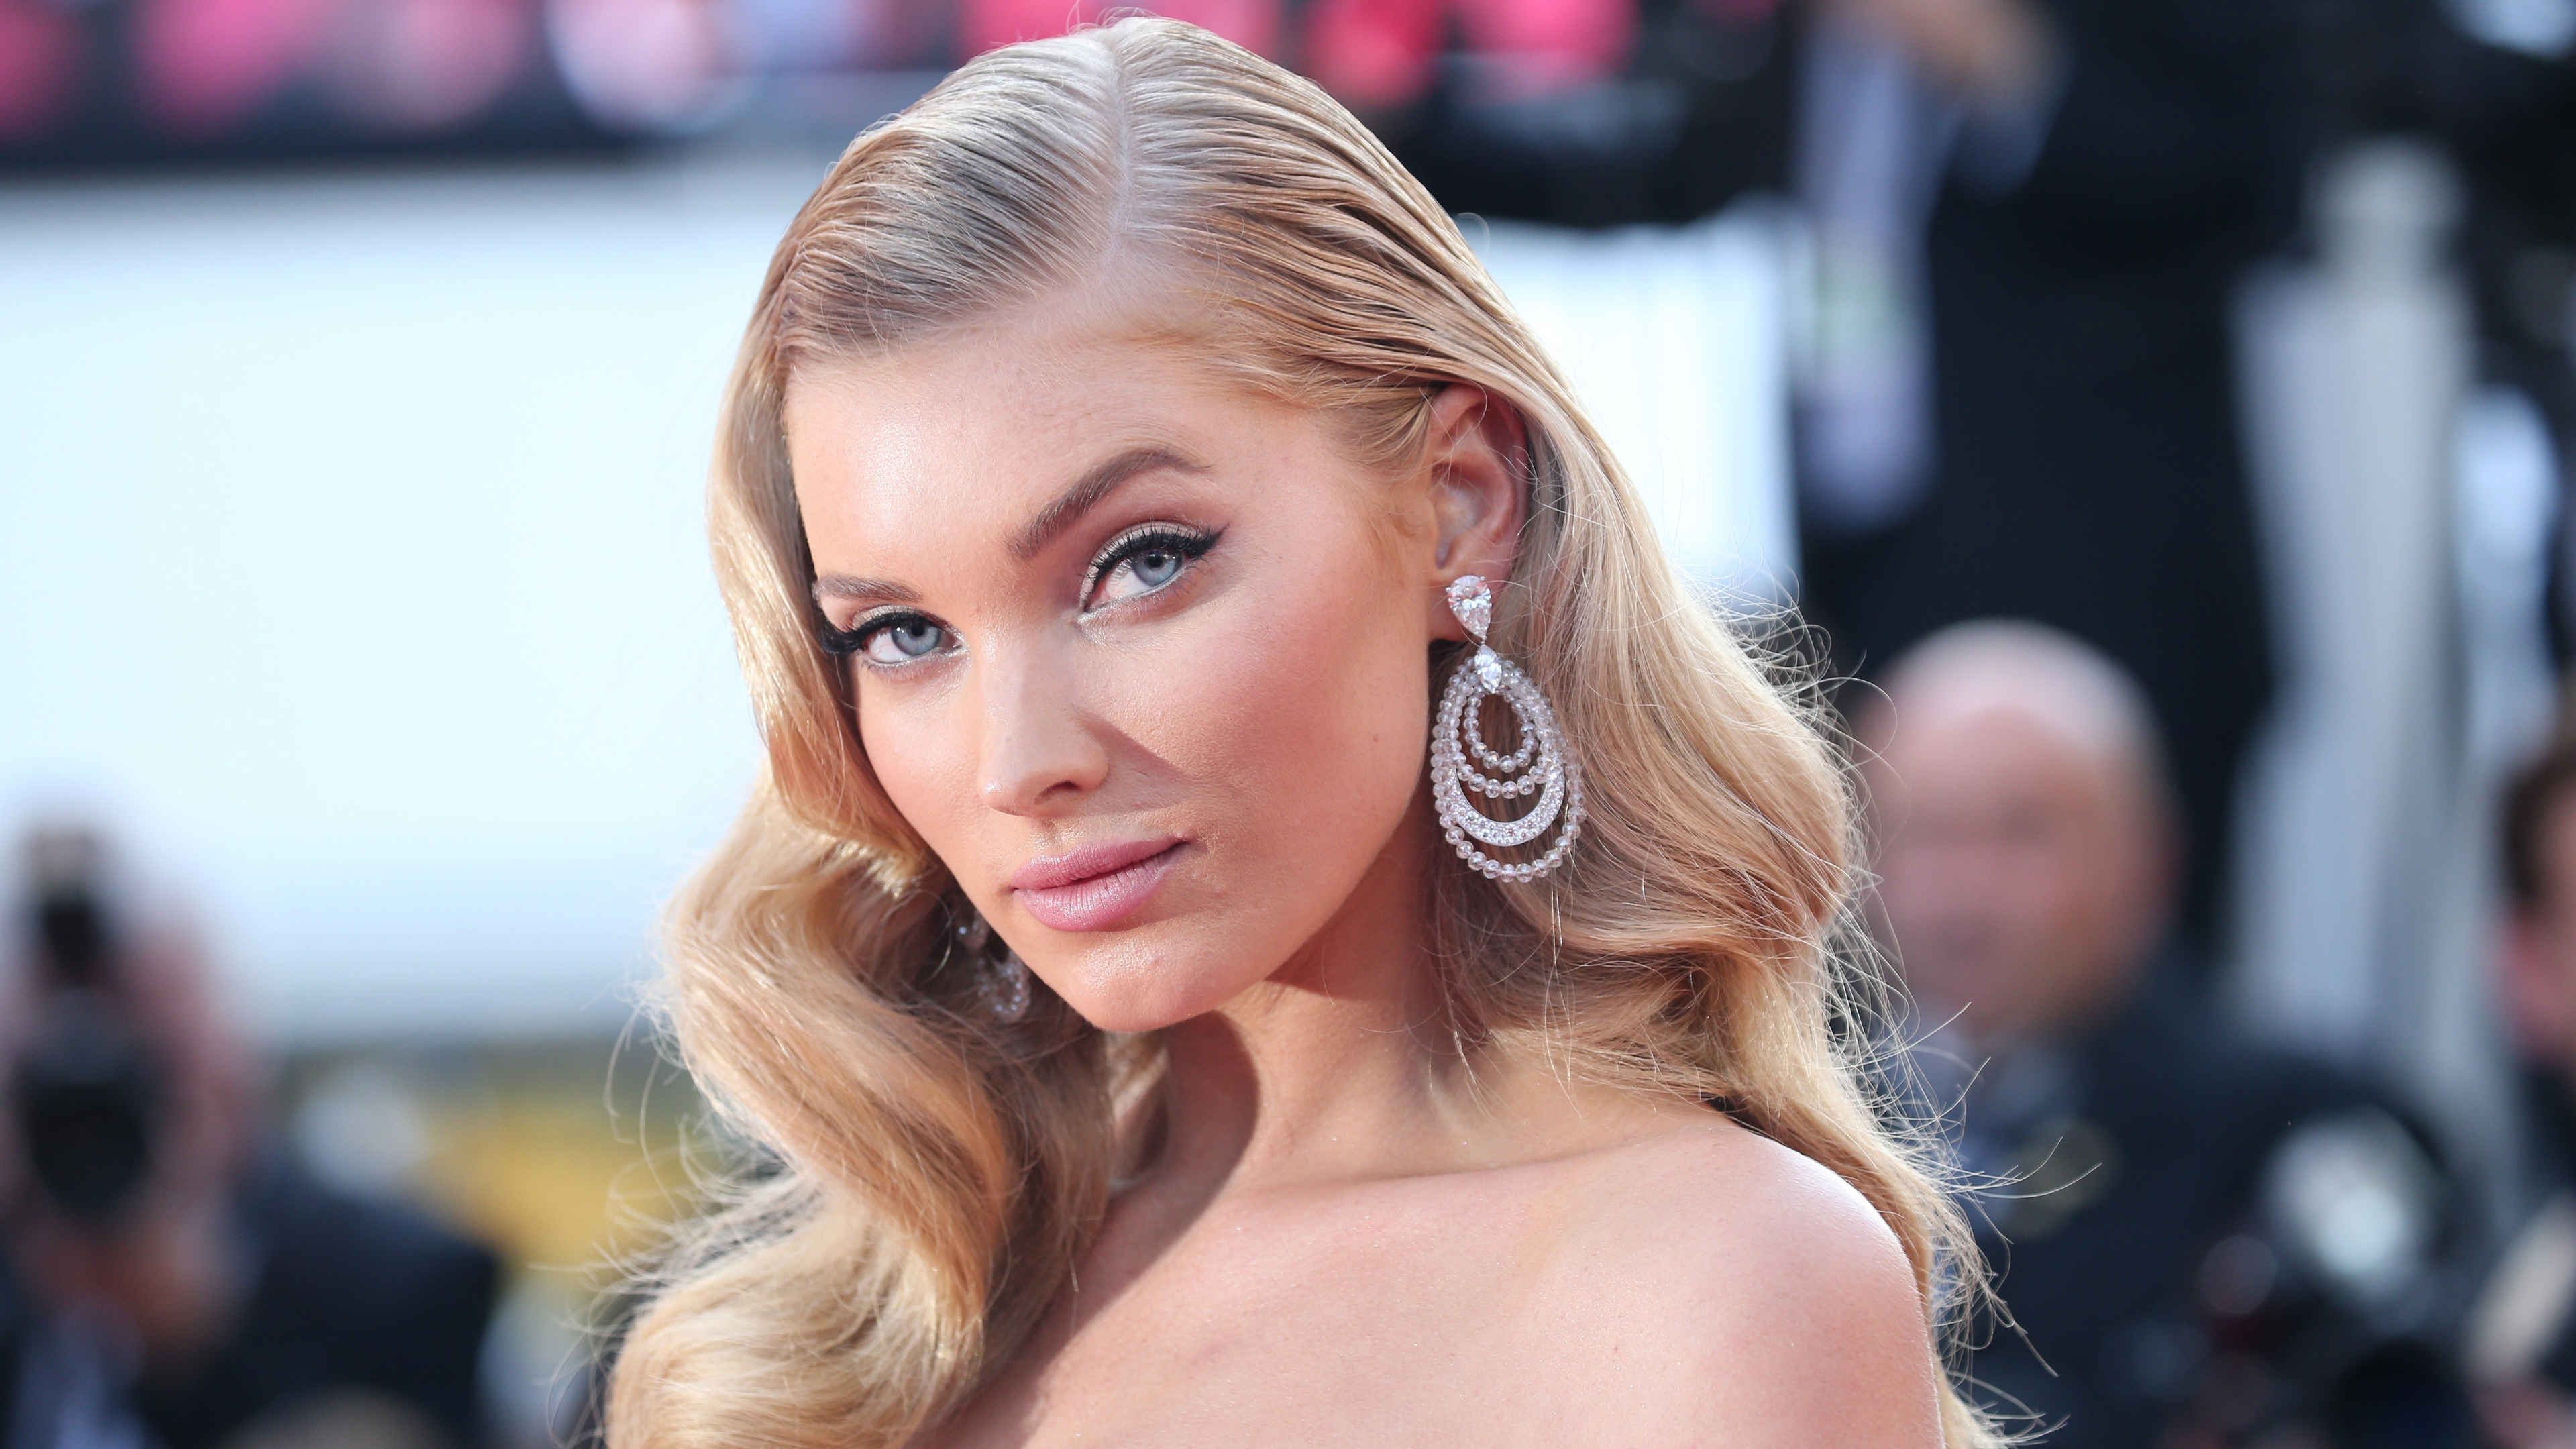 elsa hosk latest 1536950130 - Elsa Hosk Latest - model wallpapers, hd-wallpapers, girls wallpapers, elsa hosk wallpapers, 5k wallpapers, 4k-wallpapers